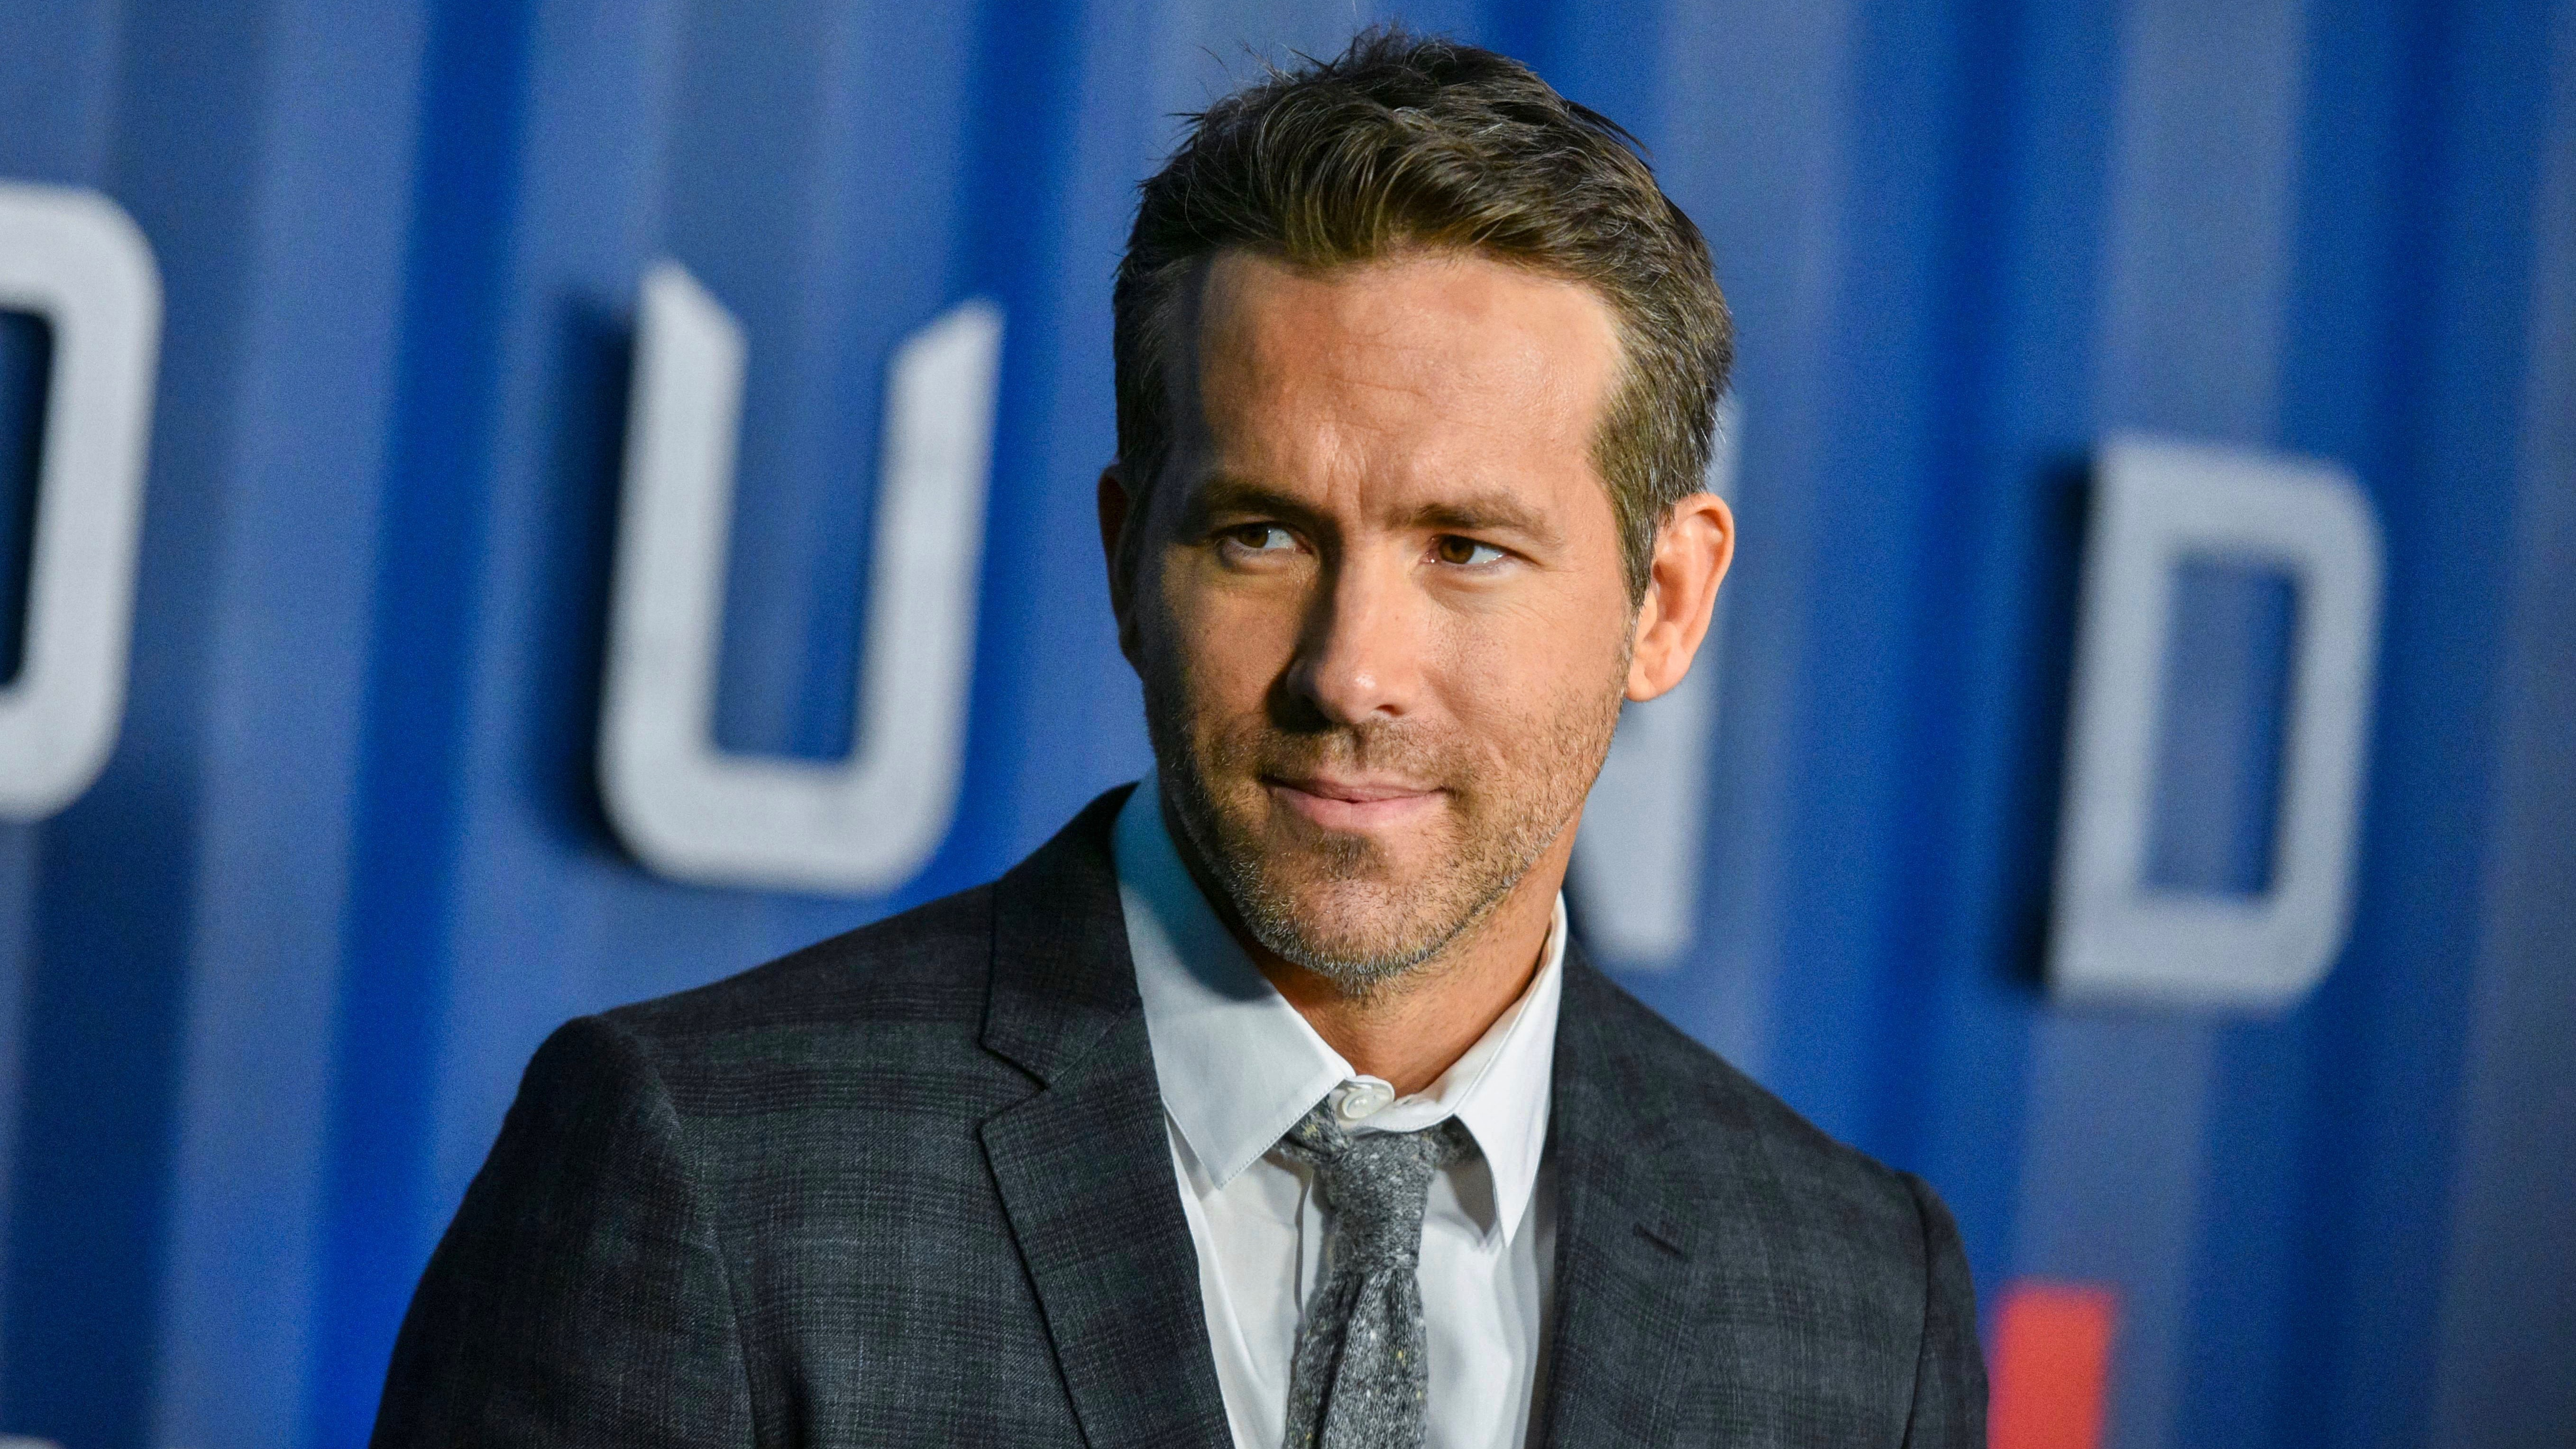 Ryan Reynolds Disagrees with Scorsese on Netflix and Phones: 'Watch on Whatever F---ing Device You Want'